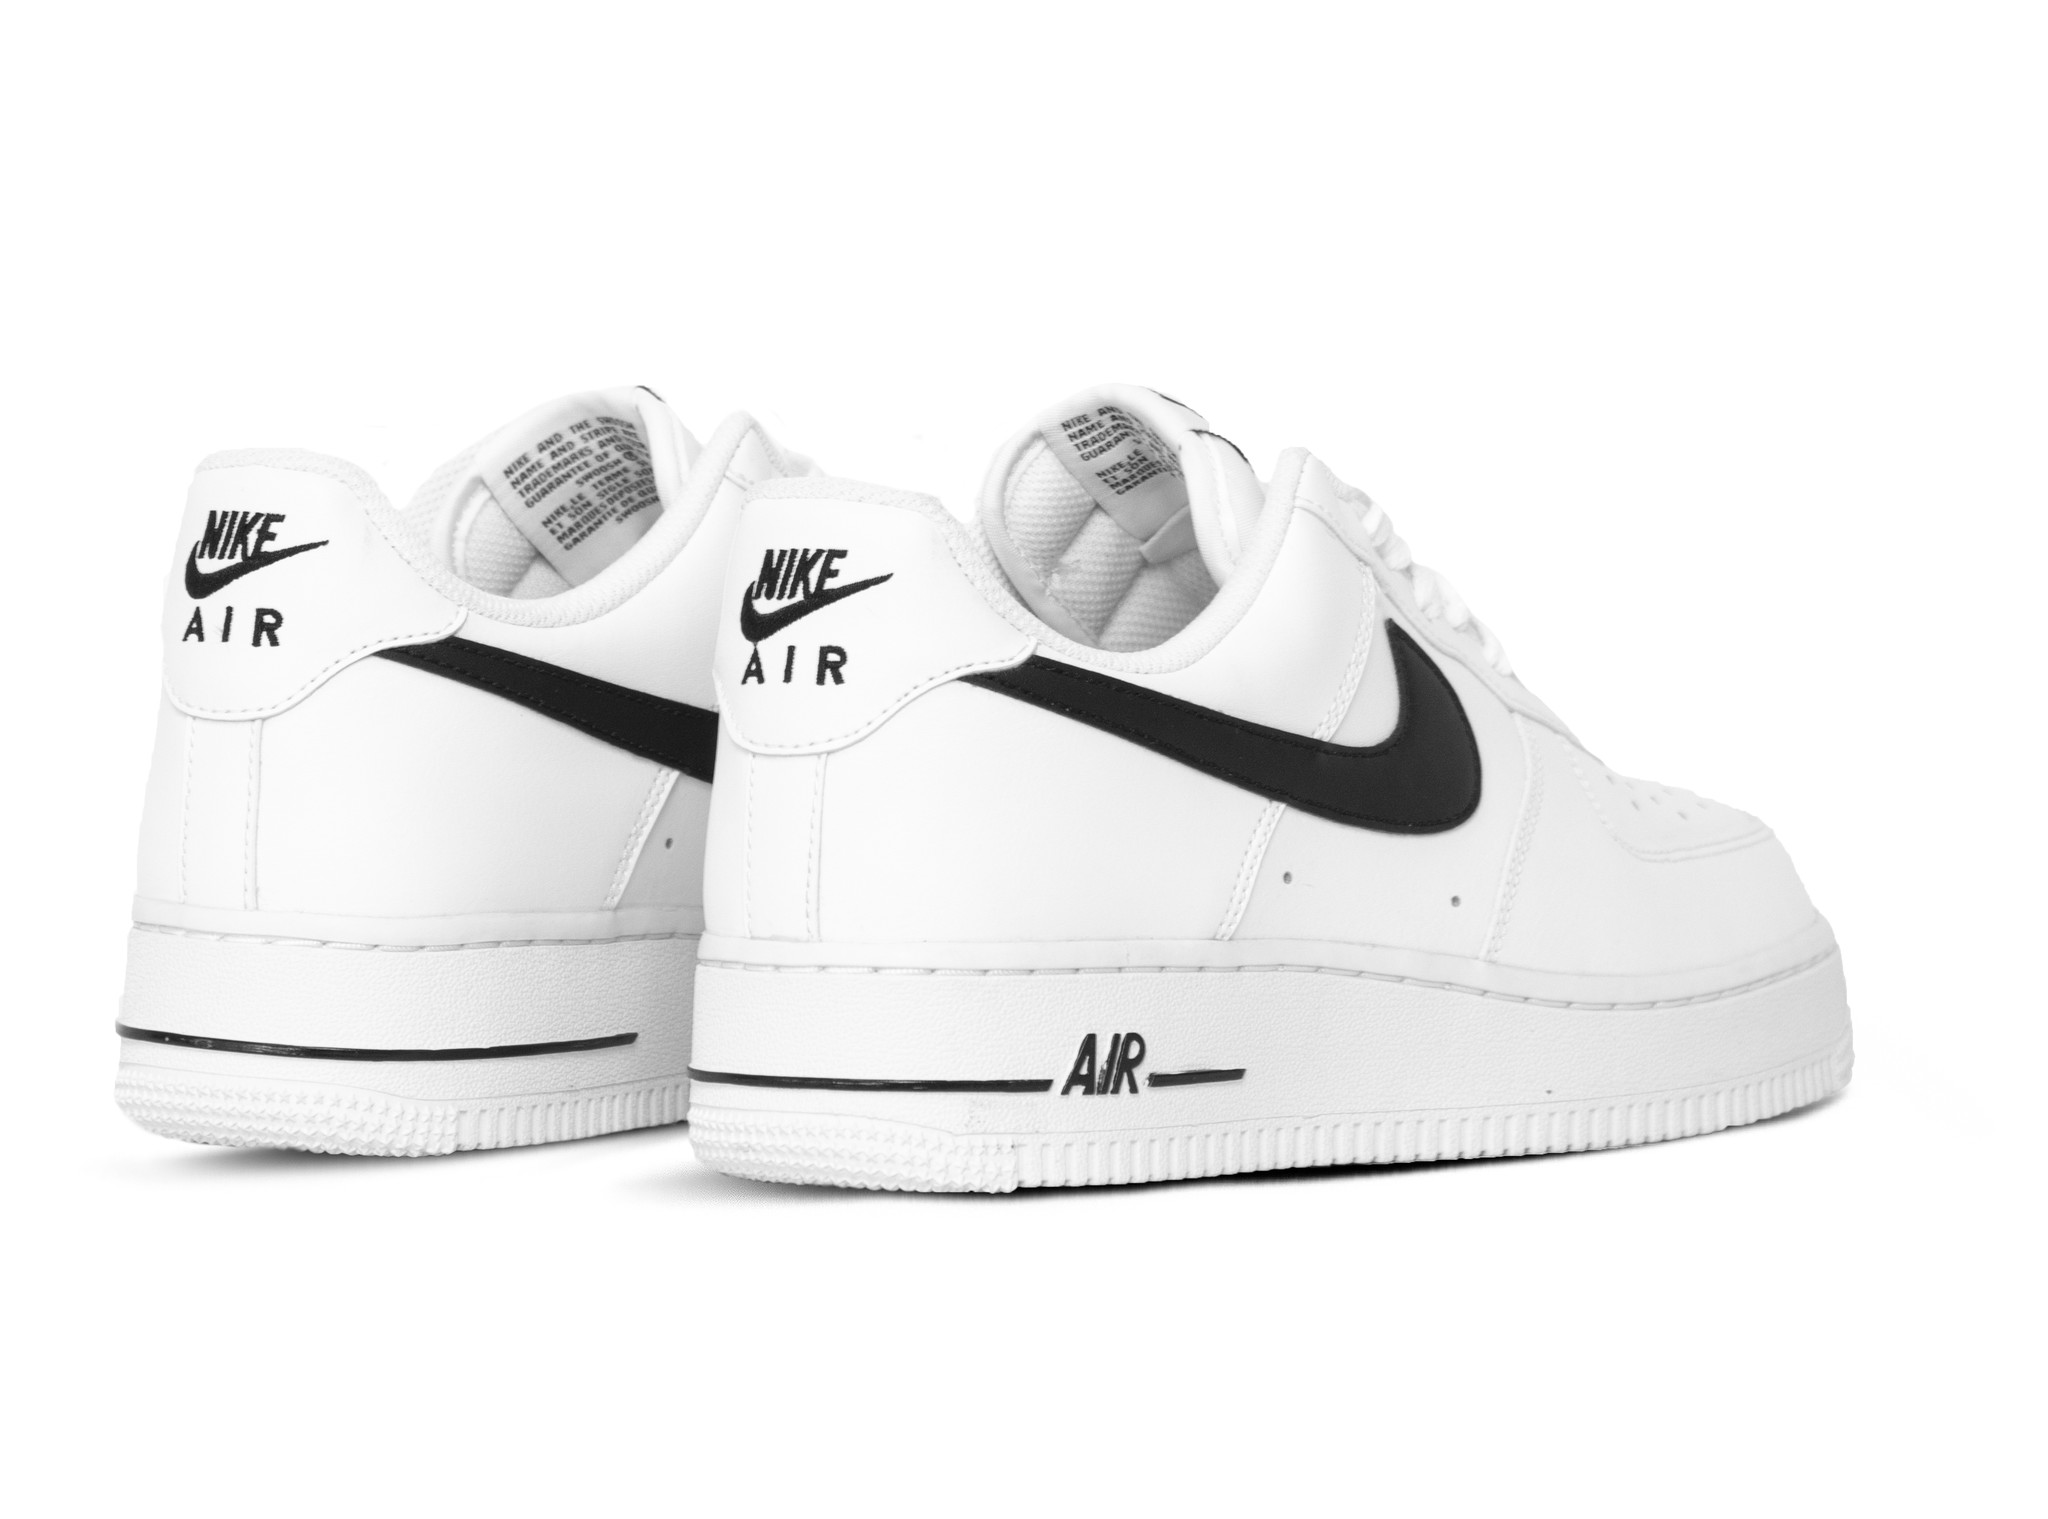 Nike Air Force 1 '07 AN20 White Black CJ0952 100